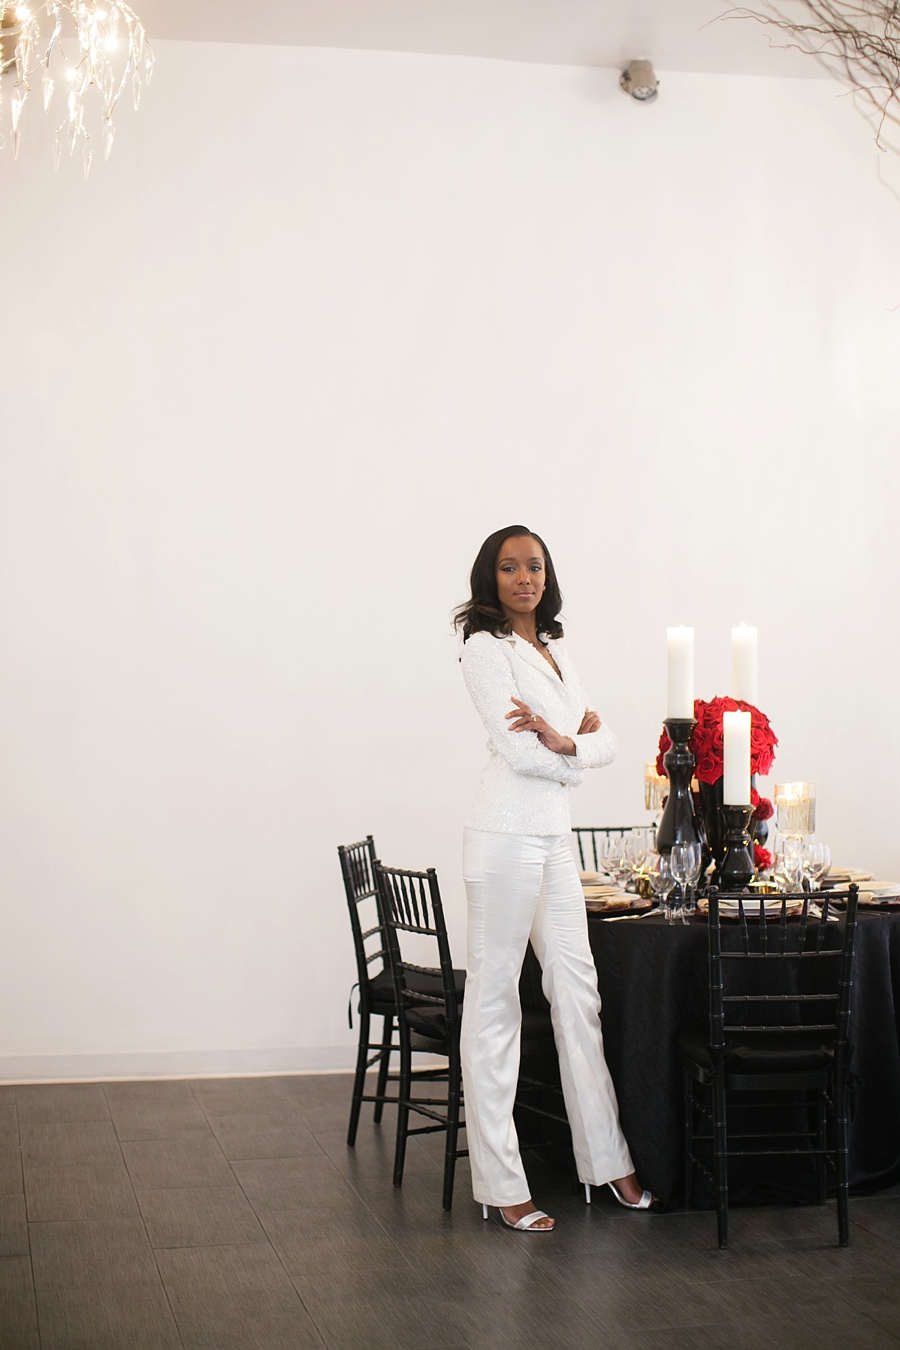 Scandal Olivia Pope and Fitz Wedding- By petronella44